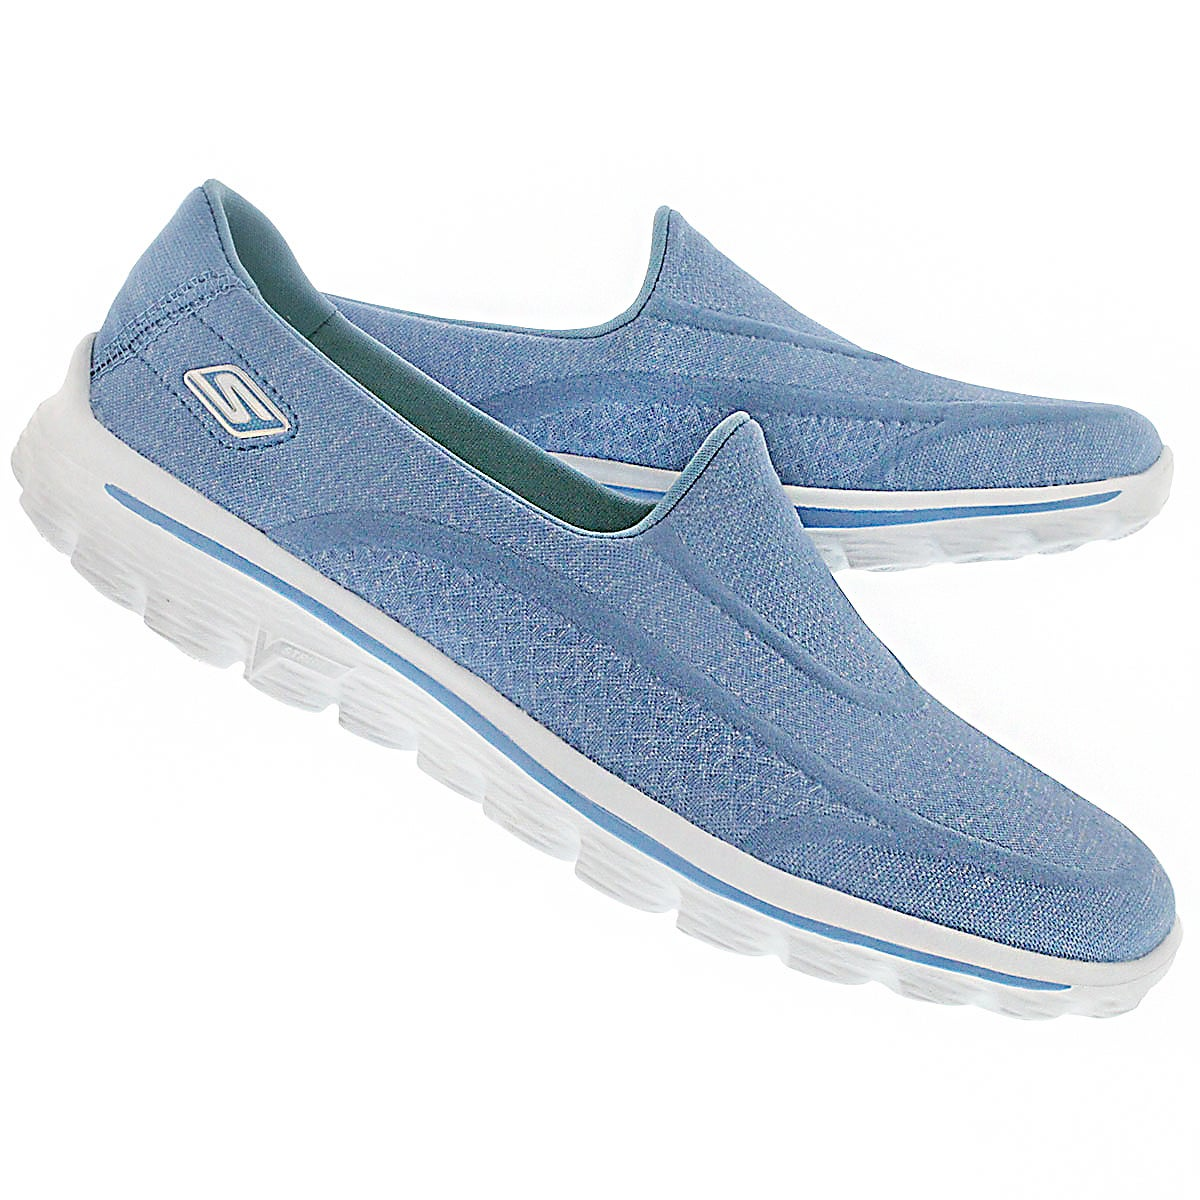 Lds GOwalk Super Sock blu/wht slip on